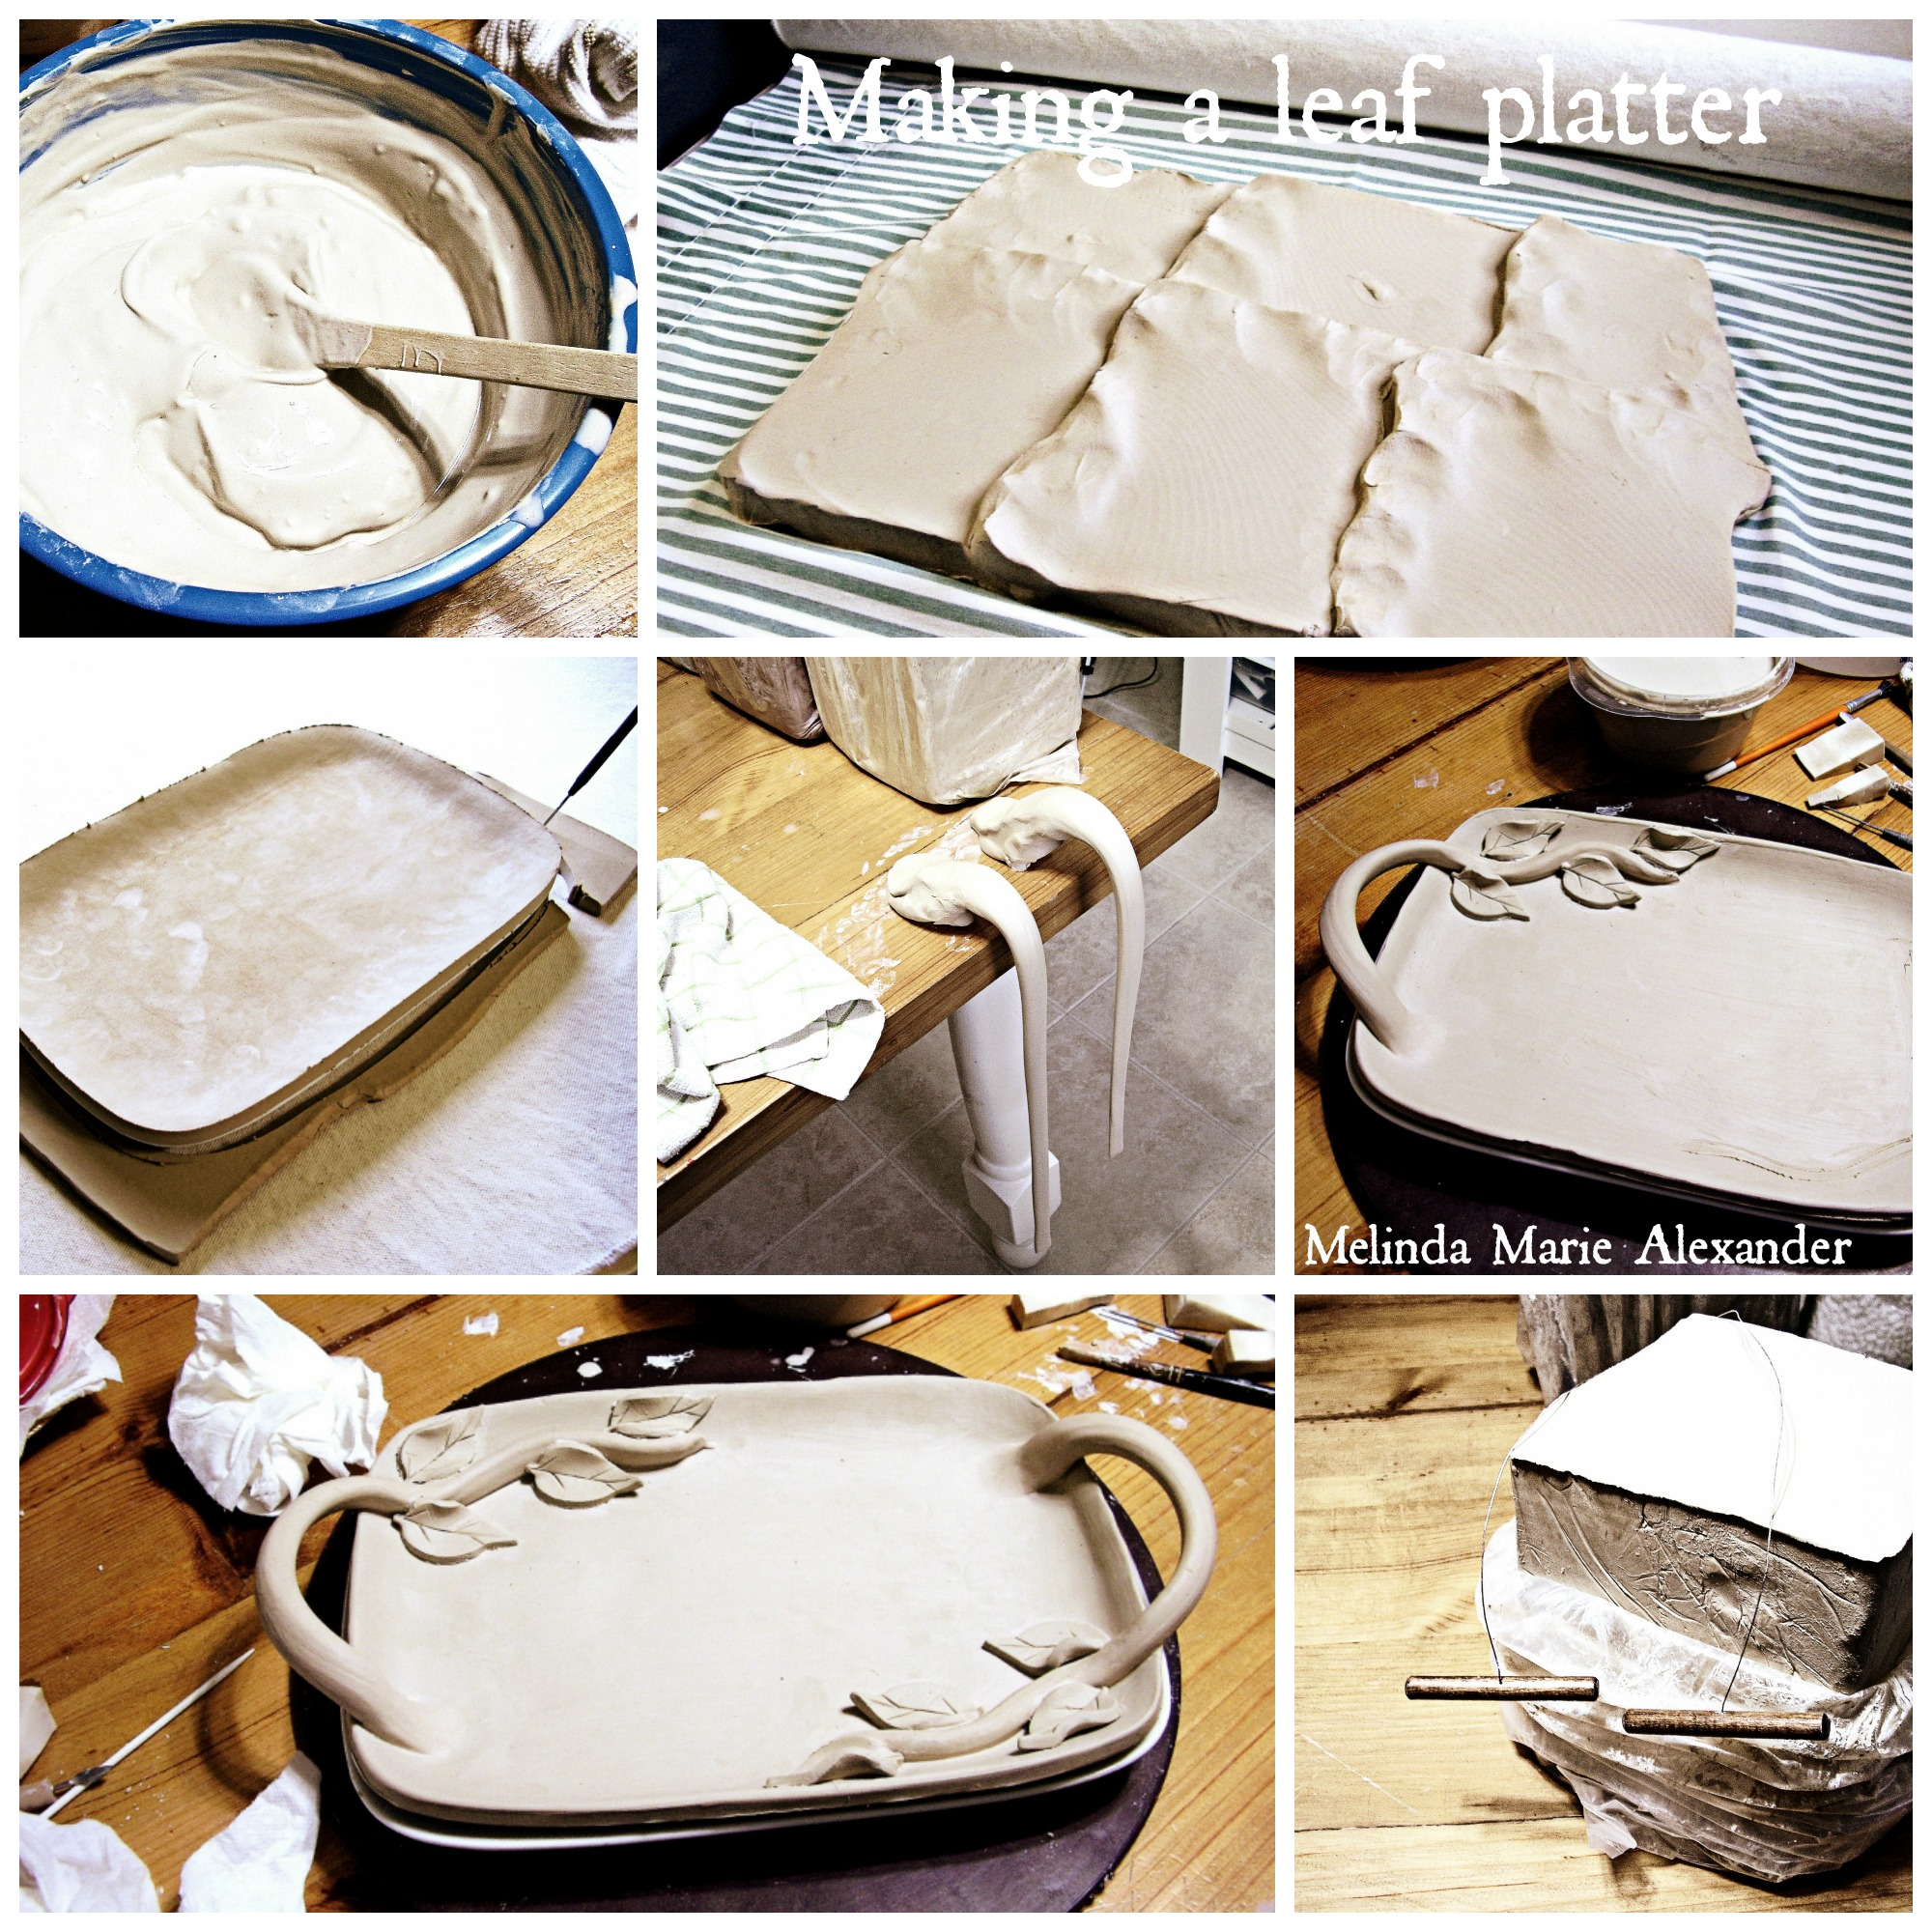 making-a-leaf-platter-pottery-inspiration-board-with-text